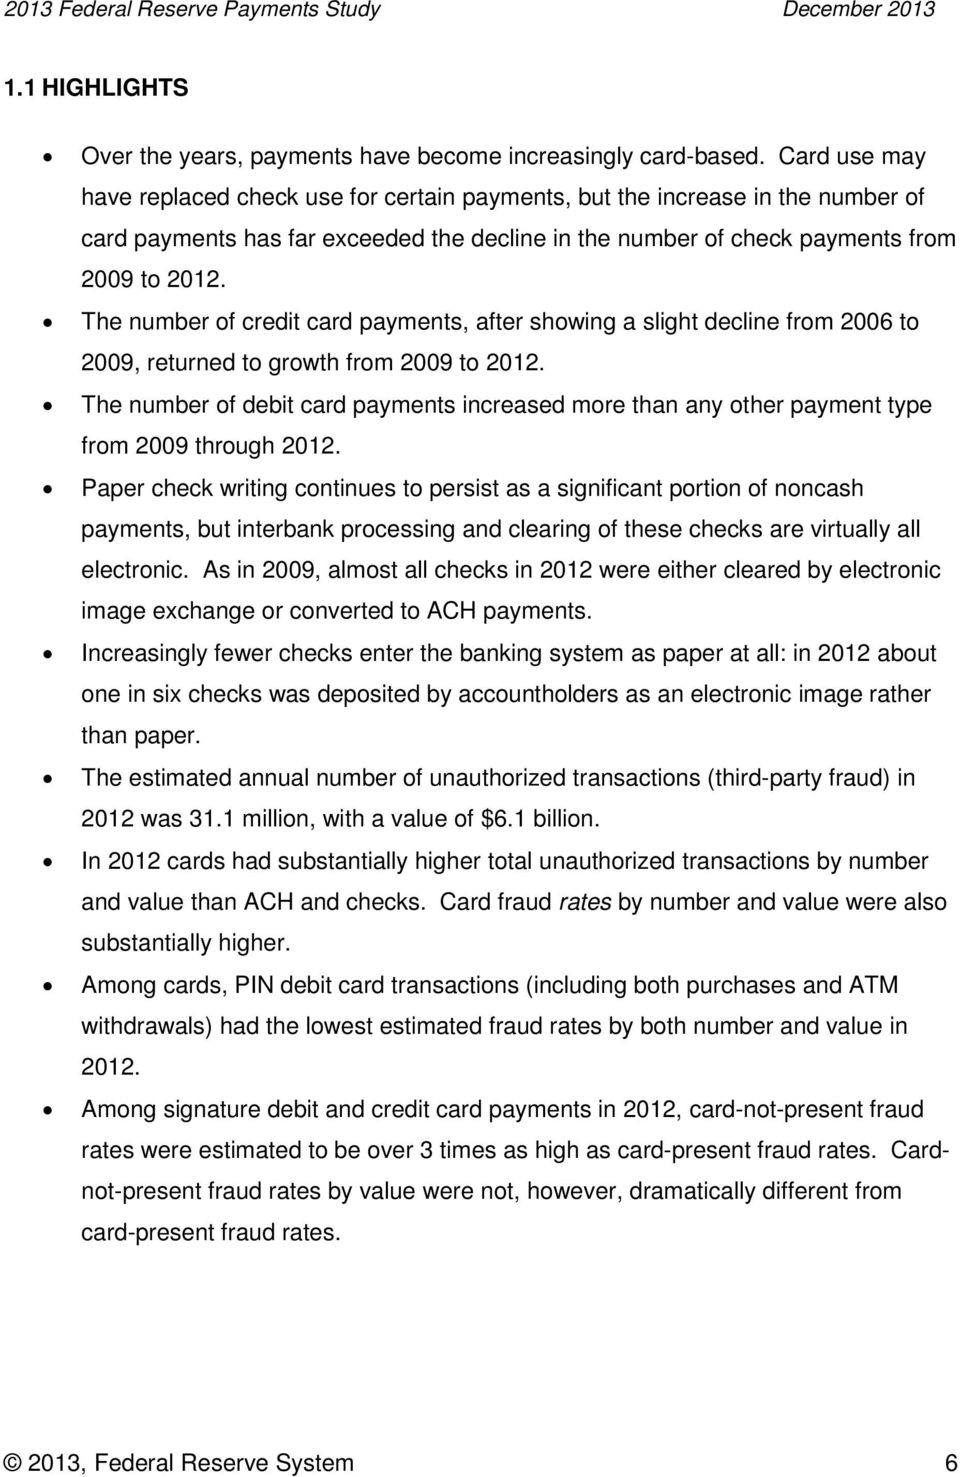 The number of credit card payments, after showing a slight decline from 2006 to 2009, returned to growth from 2009 to 2012.